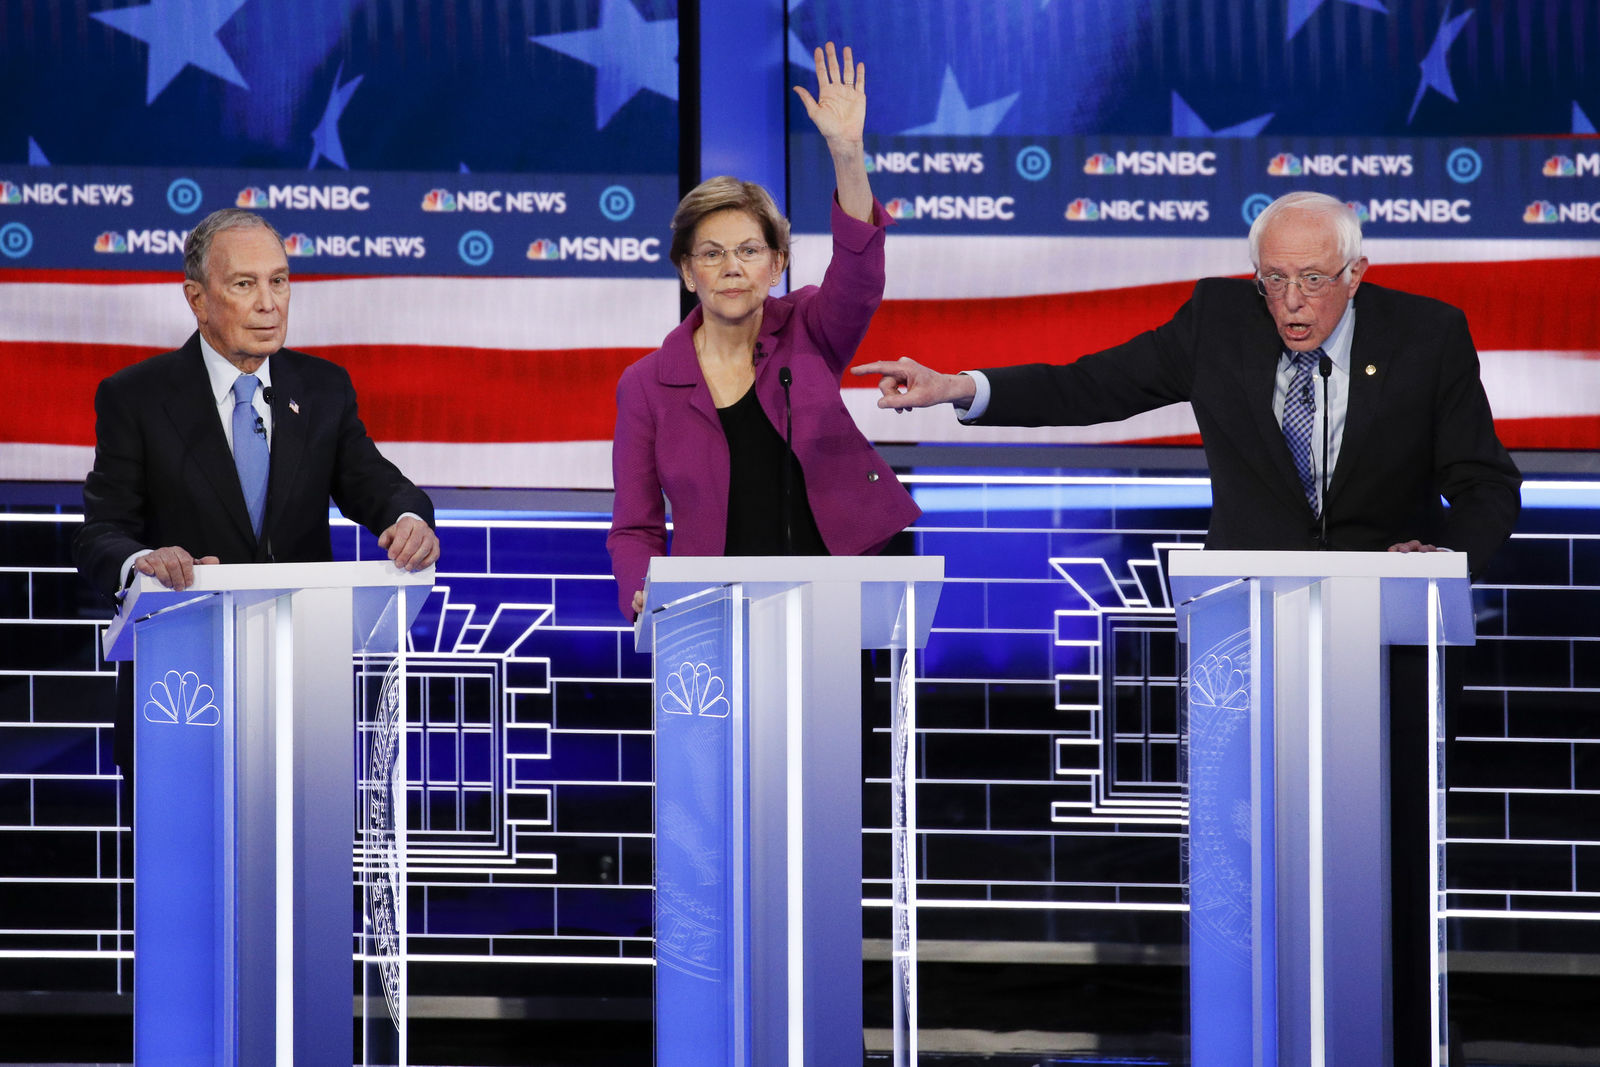 From left, Democratic presidential candidates, former New York City Mayor Mike Bloomberg, Sen. Elizabeth Warren, D-Mass., Sen. Bernie Sanders, I-Vt., participate in a Democratic presidential primary debate Wednesday, Feb. 19, 2020, in Las Vegas, hosted by NBC News and MSNBC. (AP Photo/John Locher)